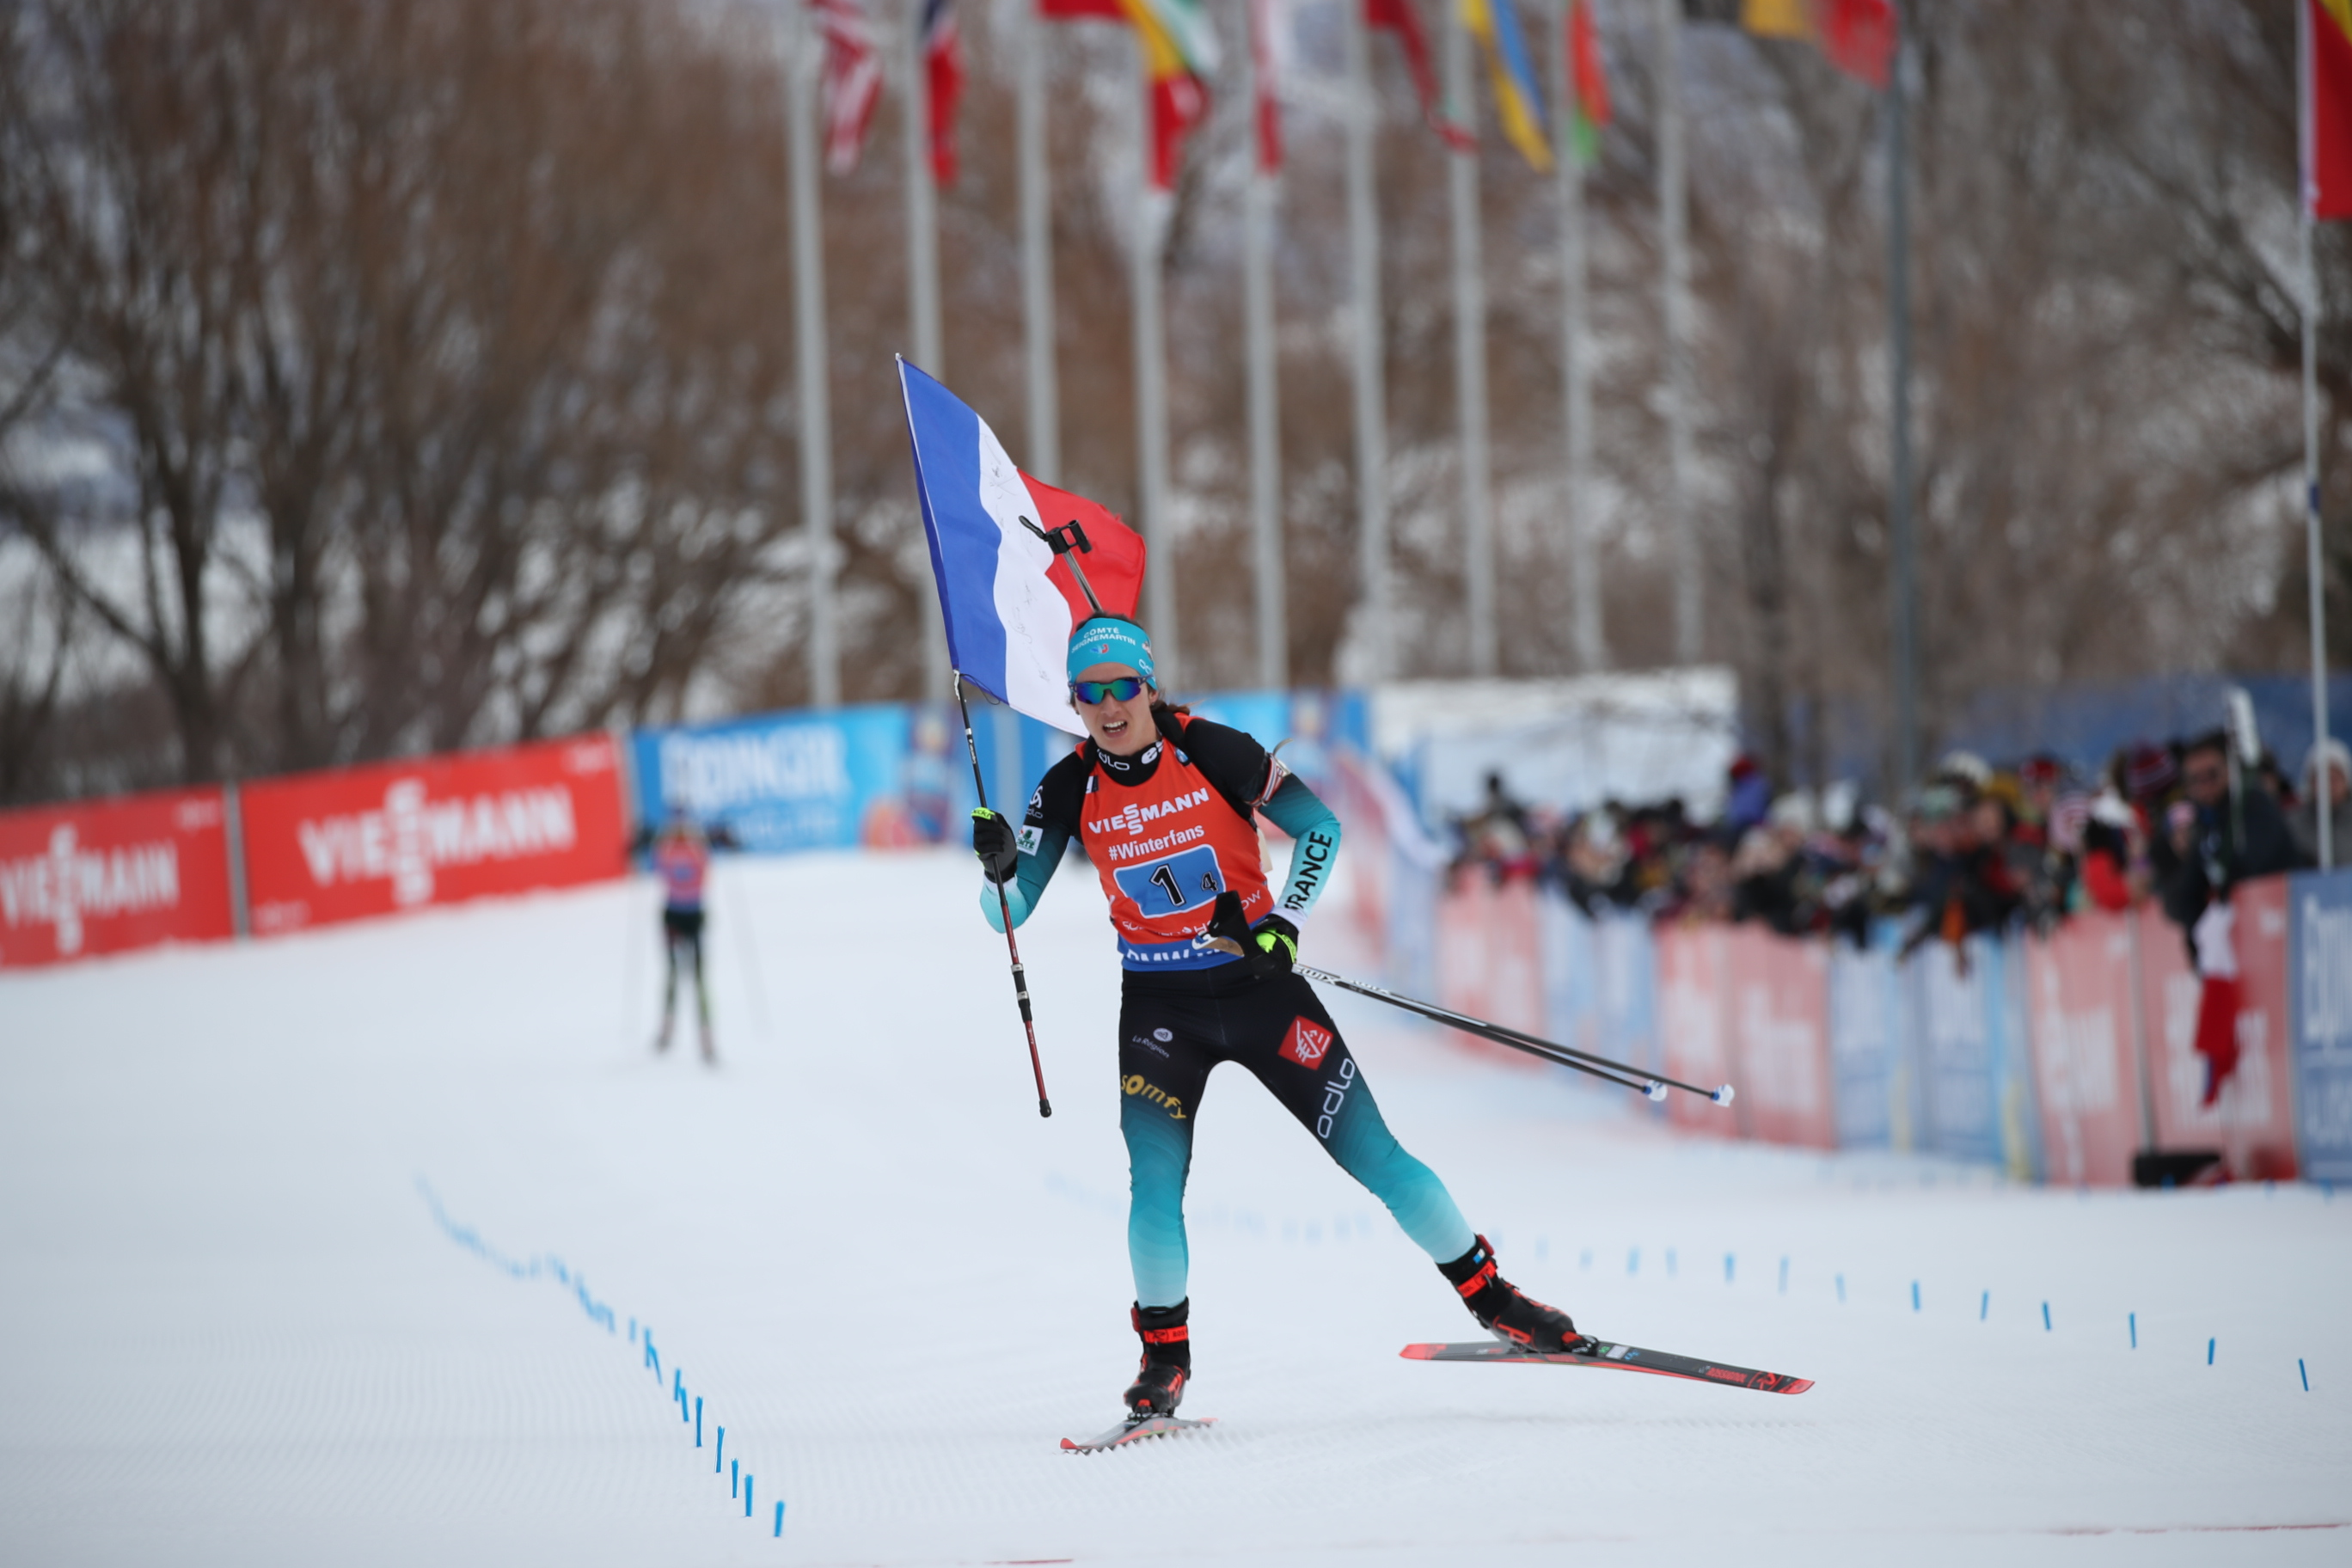 Solider Hollow, biathlon, Anaïs Chevalier